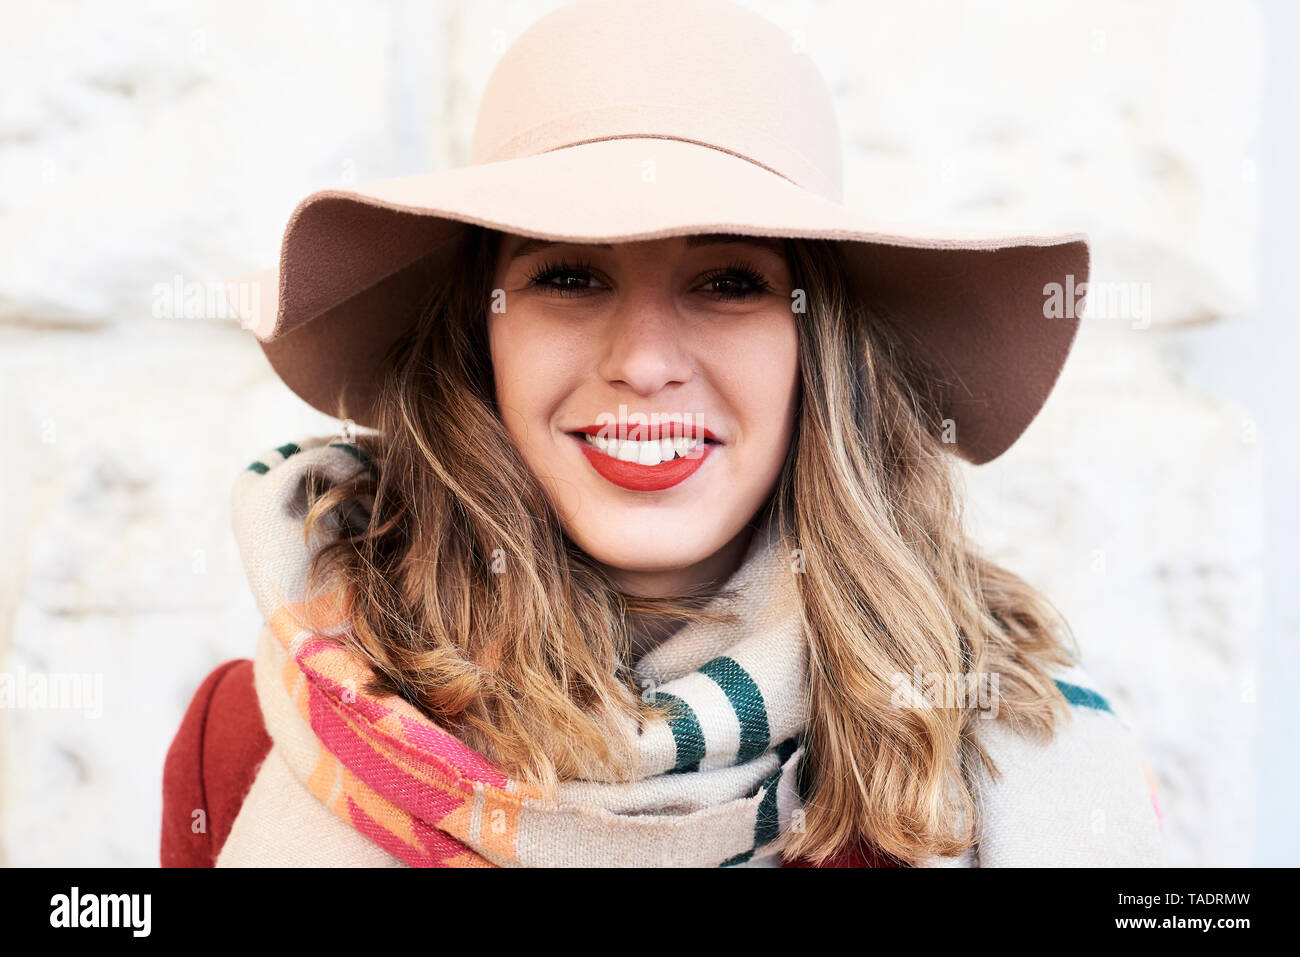 32116837dc74ae Portrait of a smiling stylish woman wearing a floppy hat - Stock Image